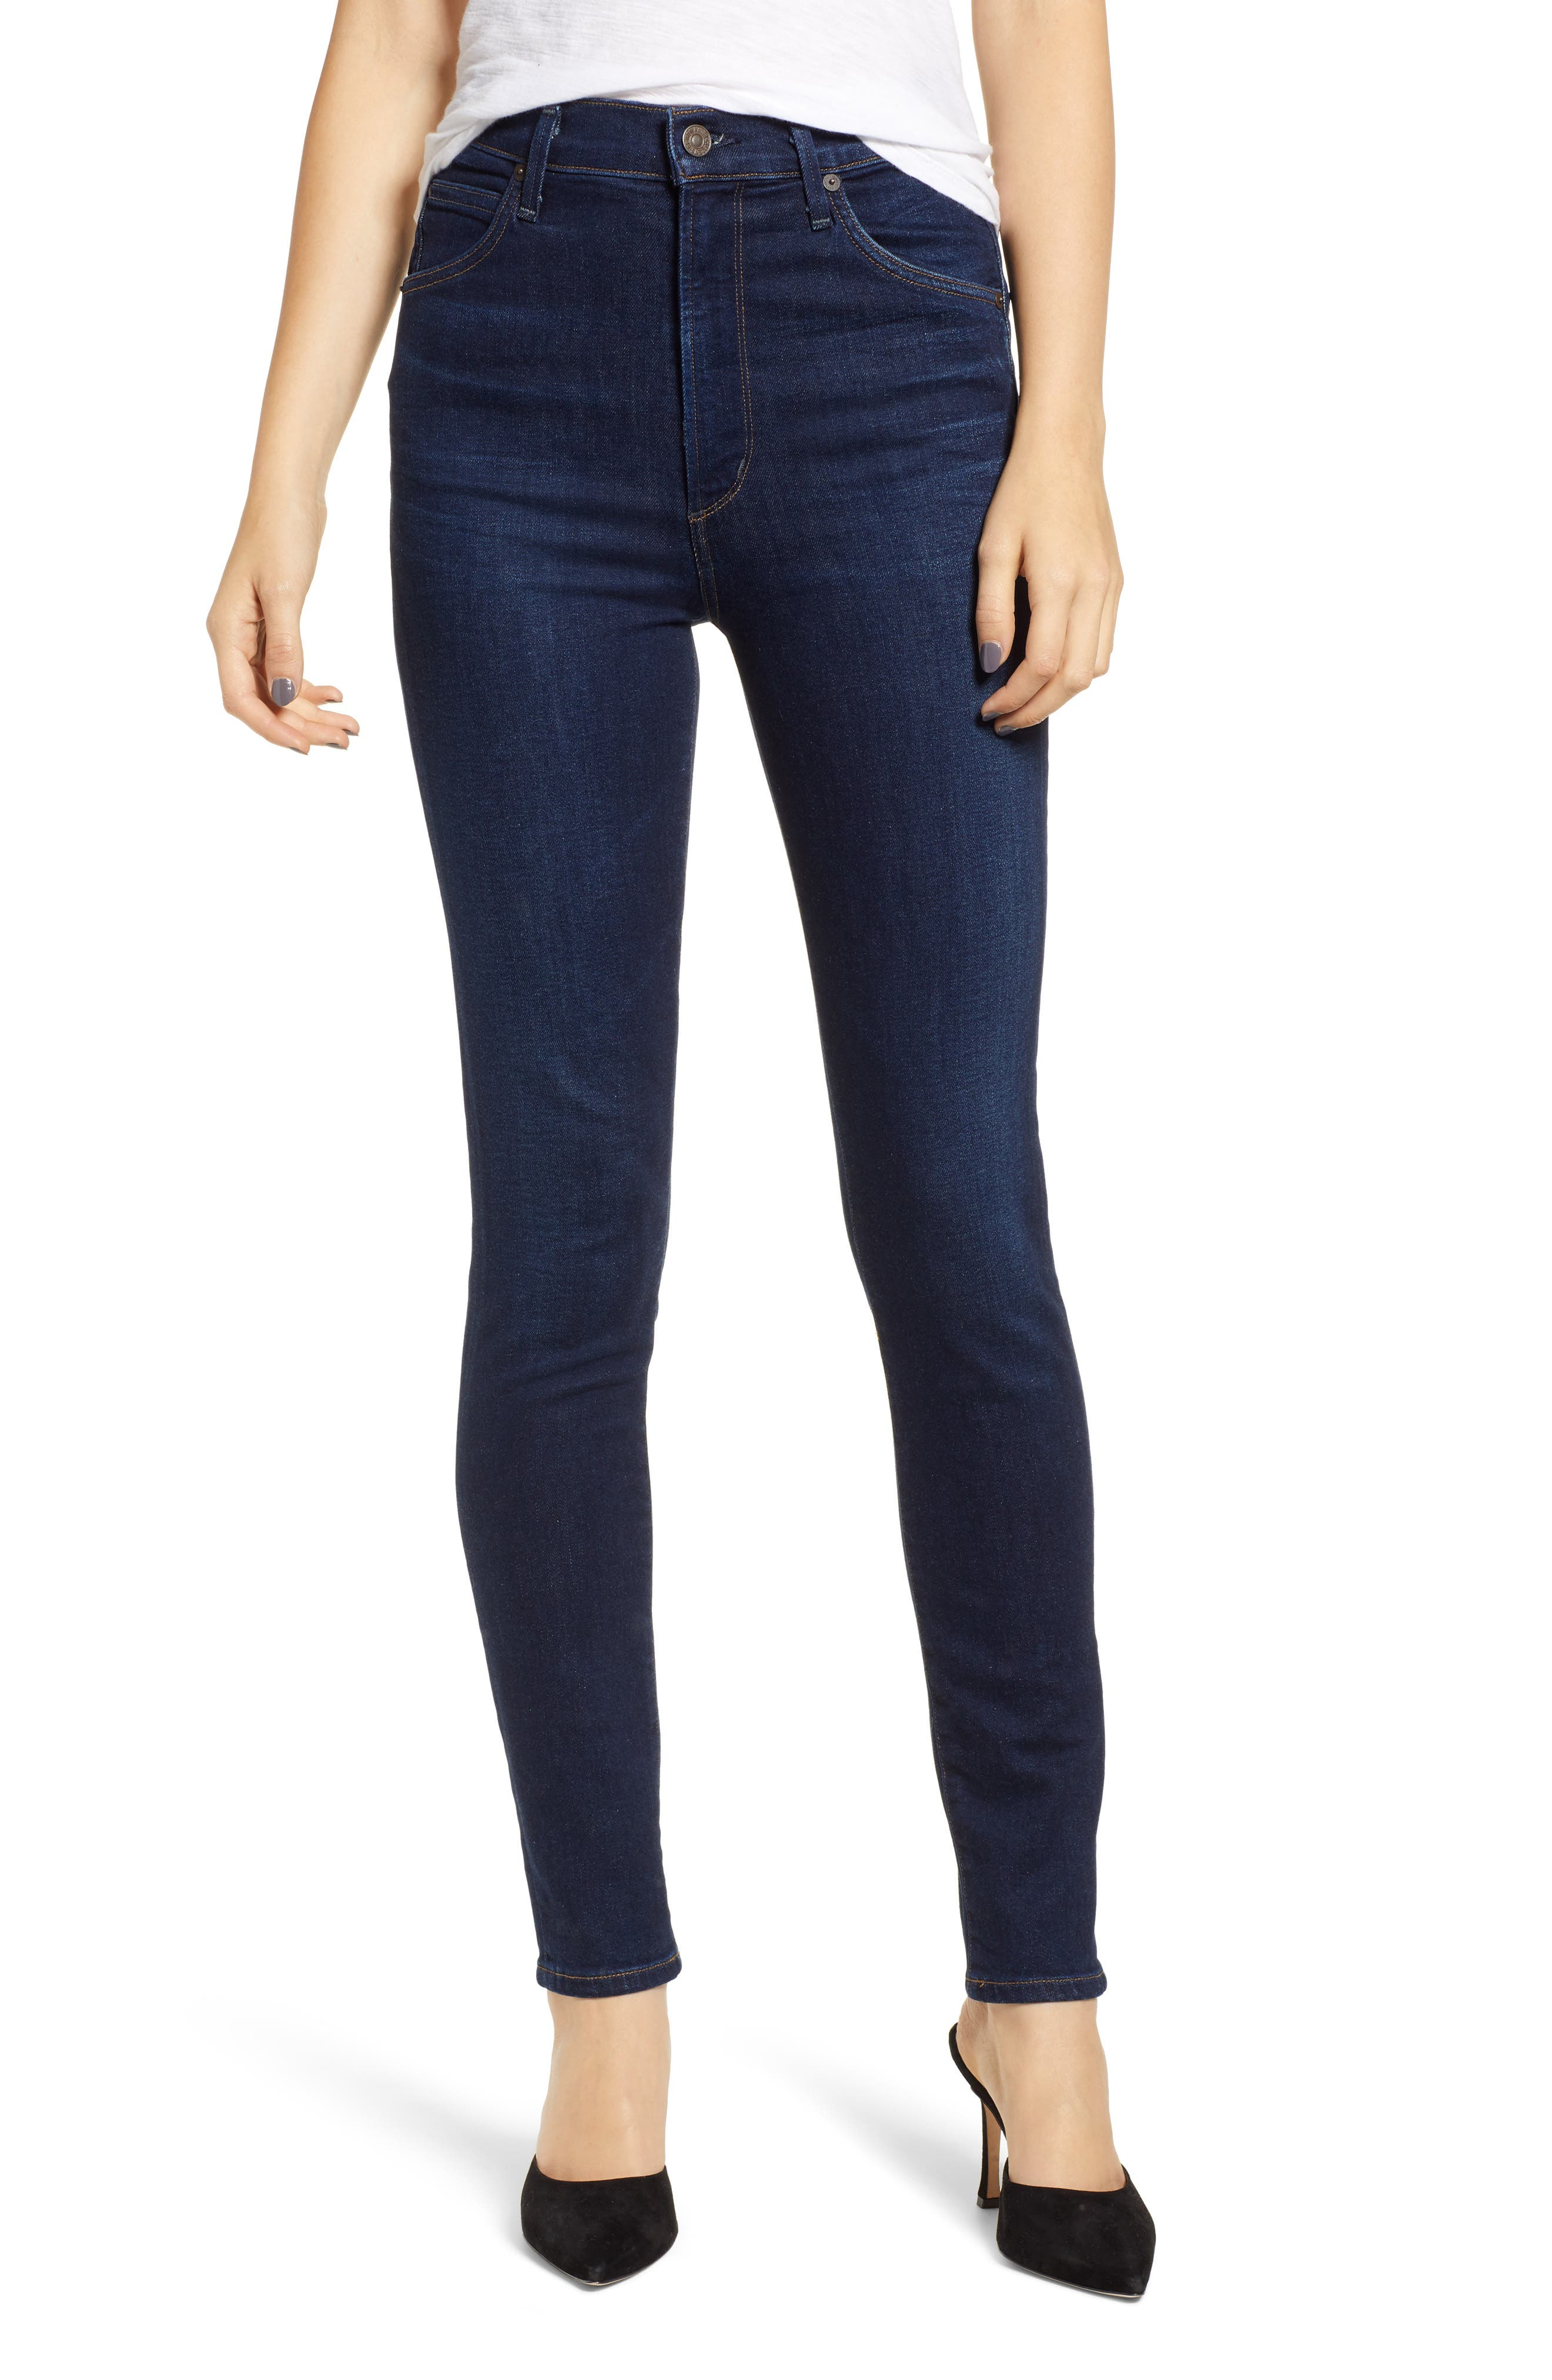 Women's Citizens Of Humanity Chrissy High Waist Skinny Jeans